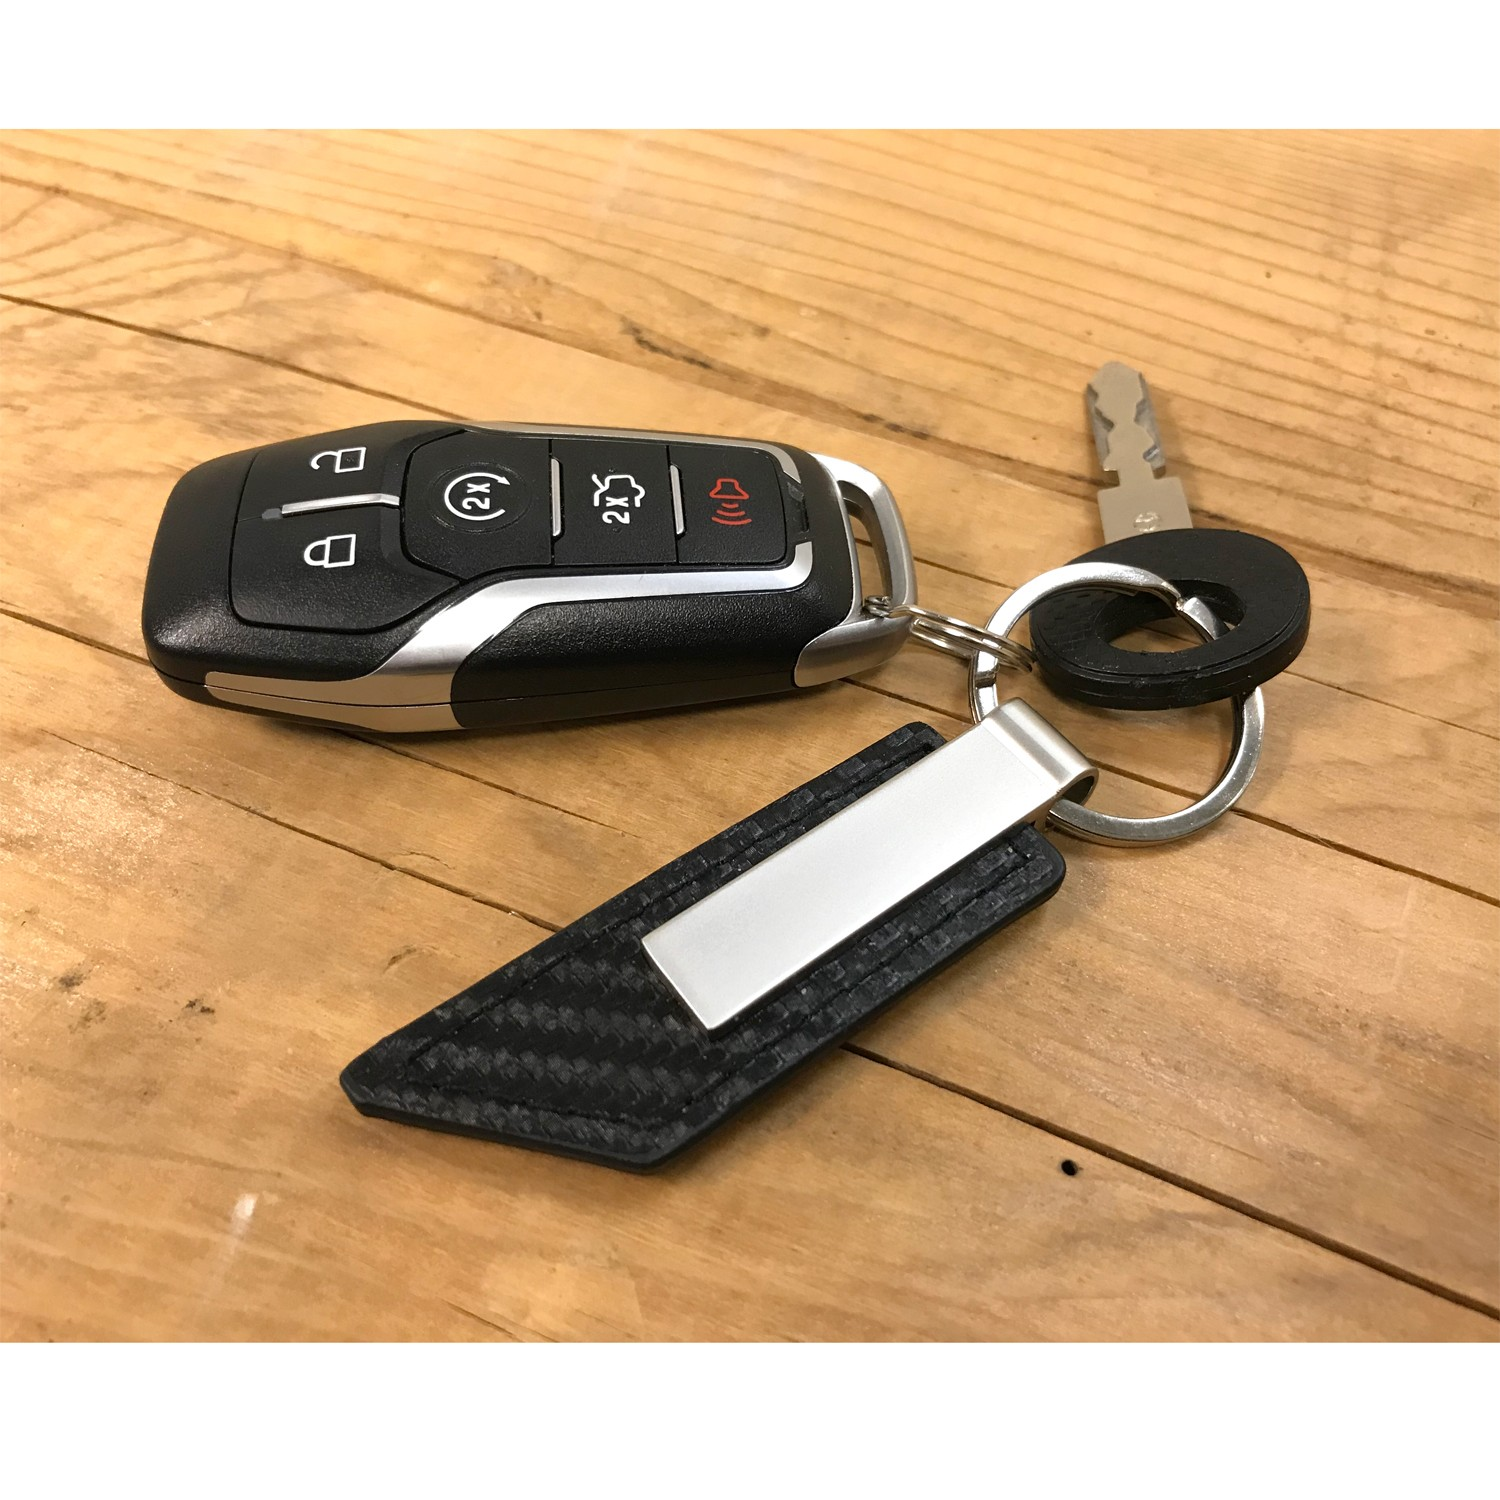 Ford Focus RS Real Carbon Fiber Blade Style with Black Leather Strap Key Chain